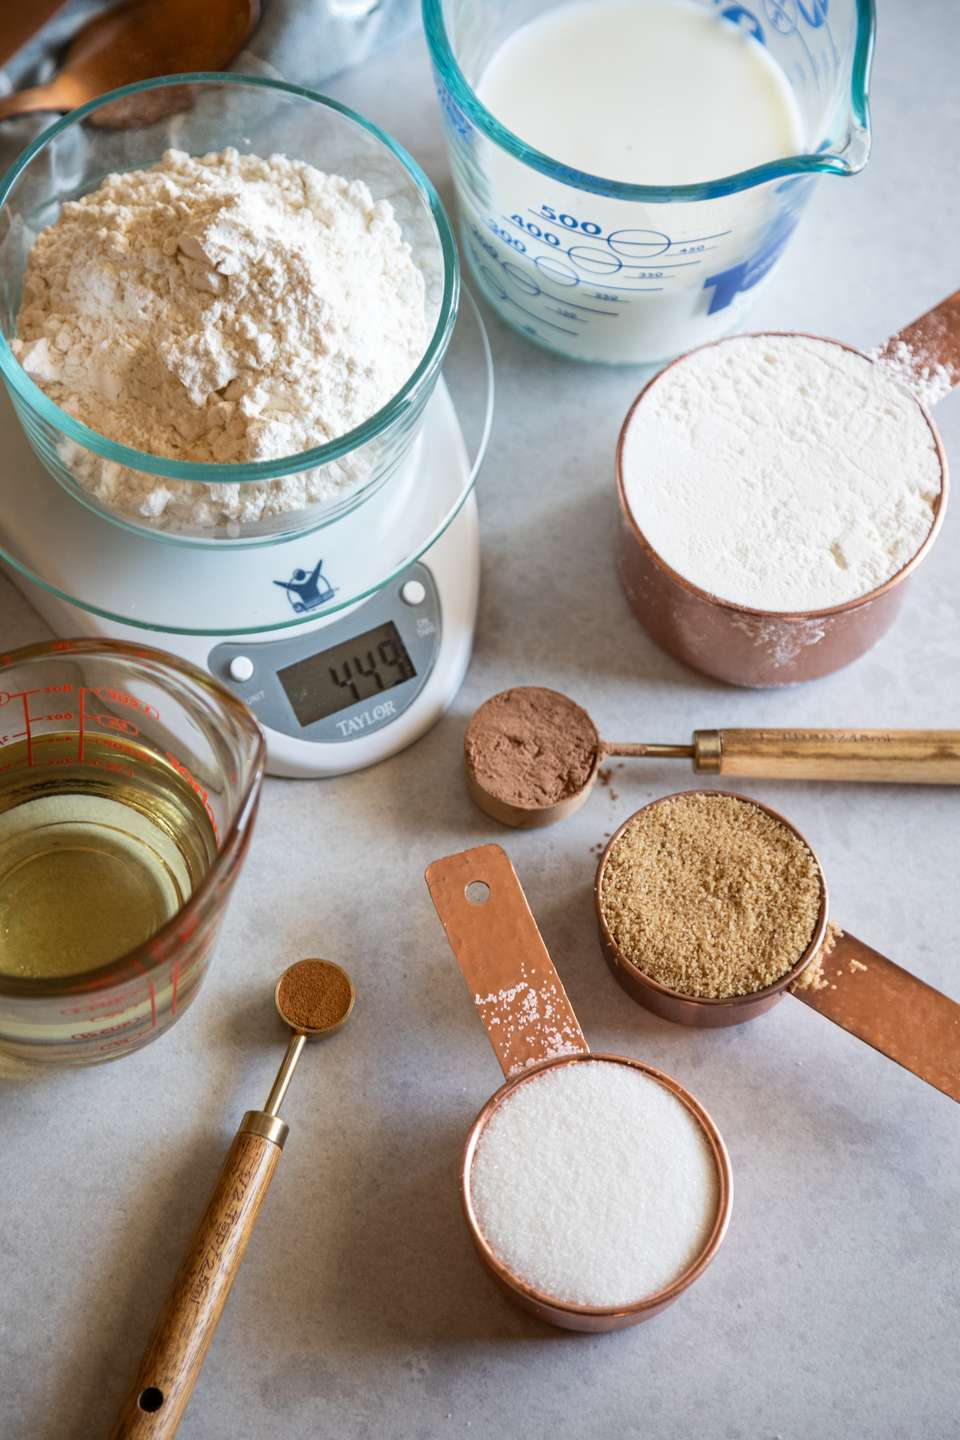 Measuring cups, scales, and liquid measuring to show how to measure flour.